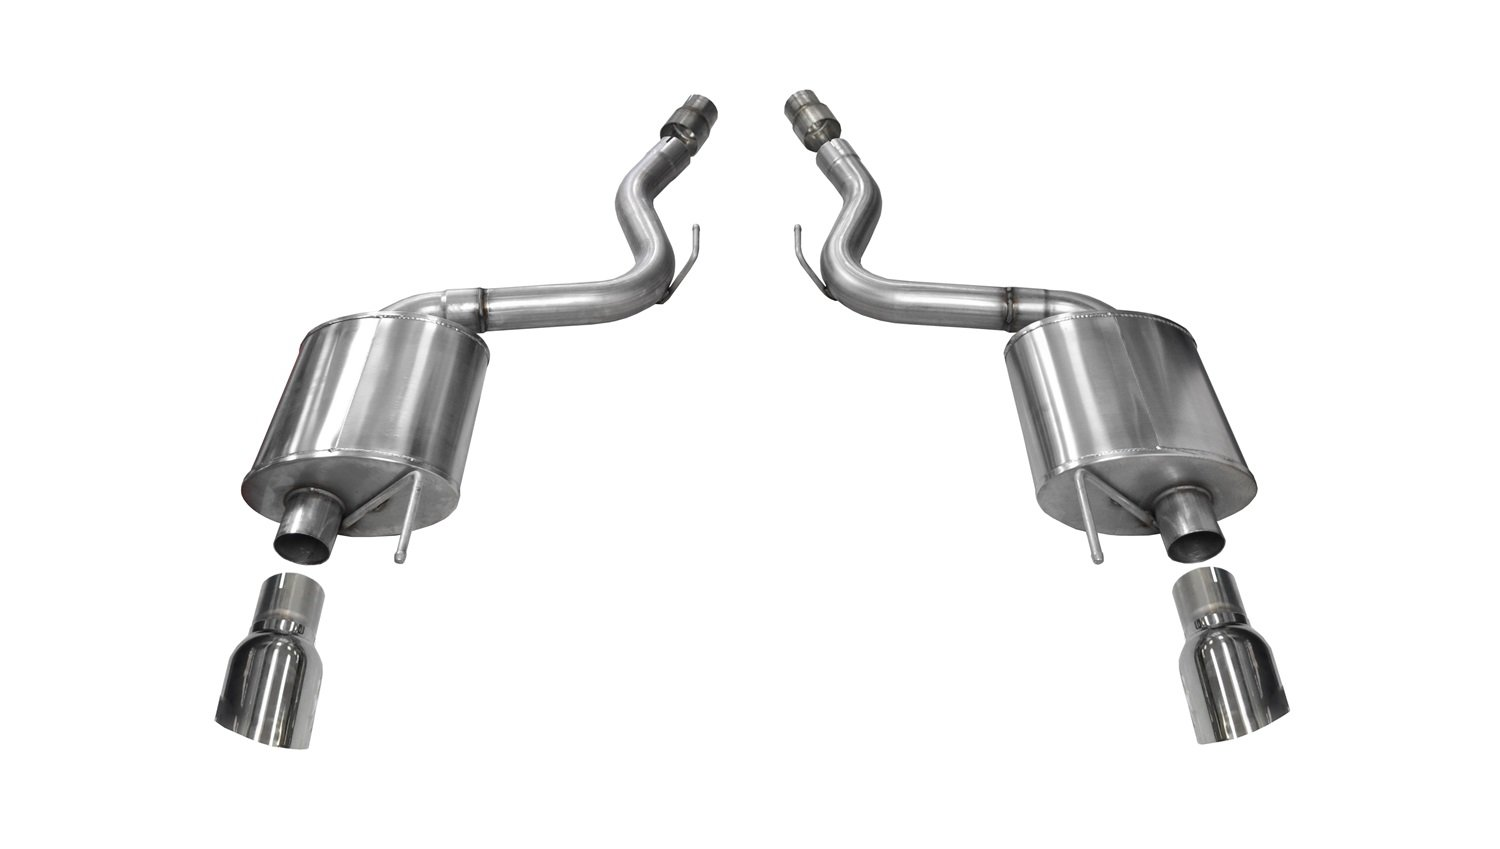 Ford Mustang GT Corsa 14329 Axle Back Exhaust